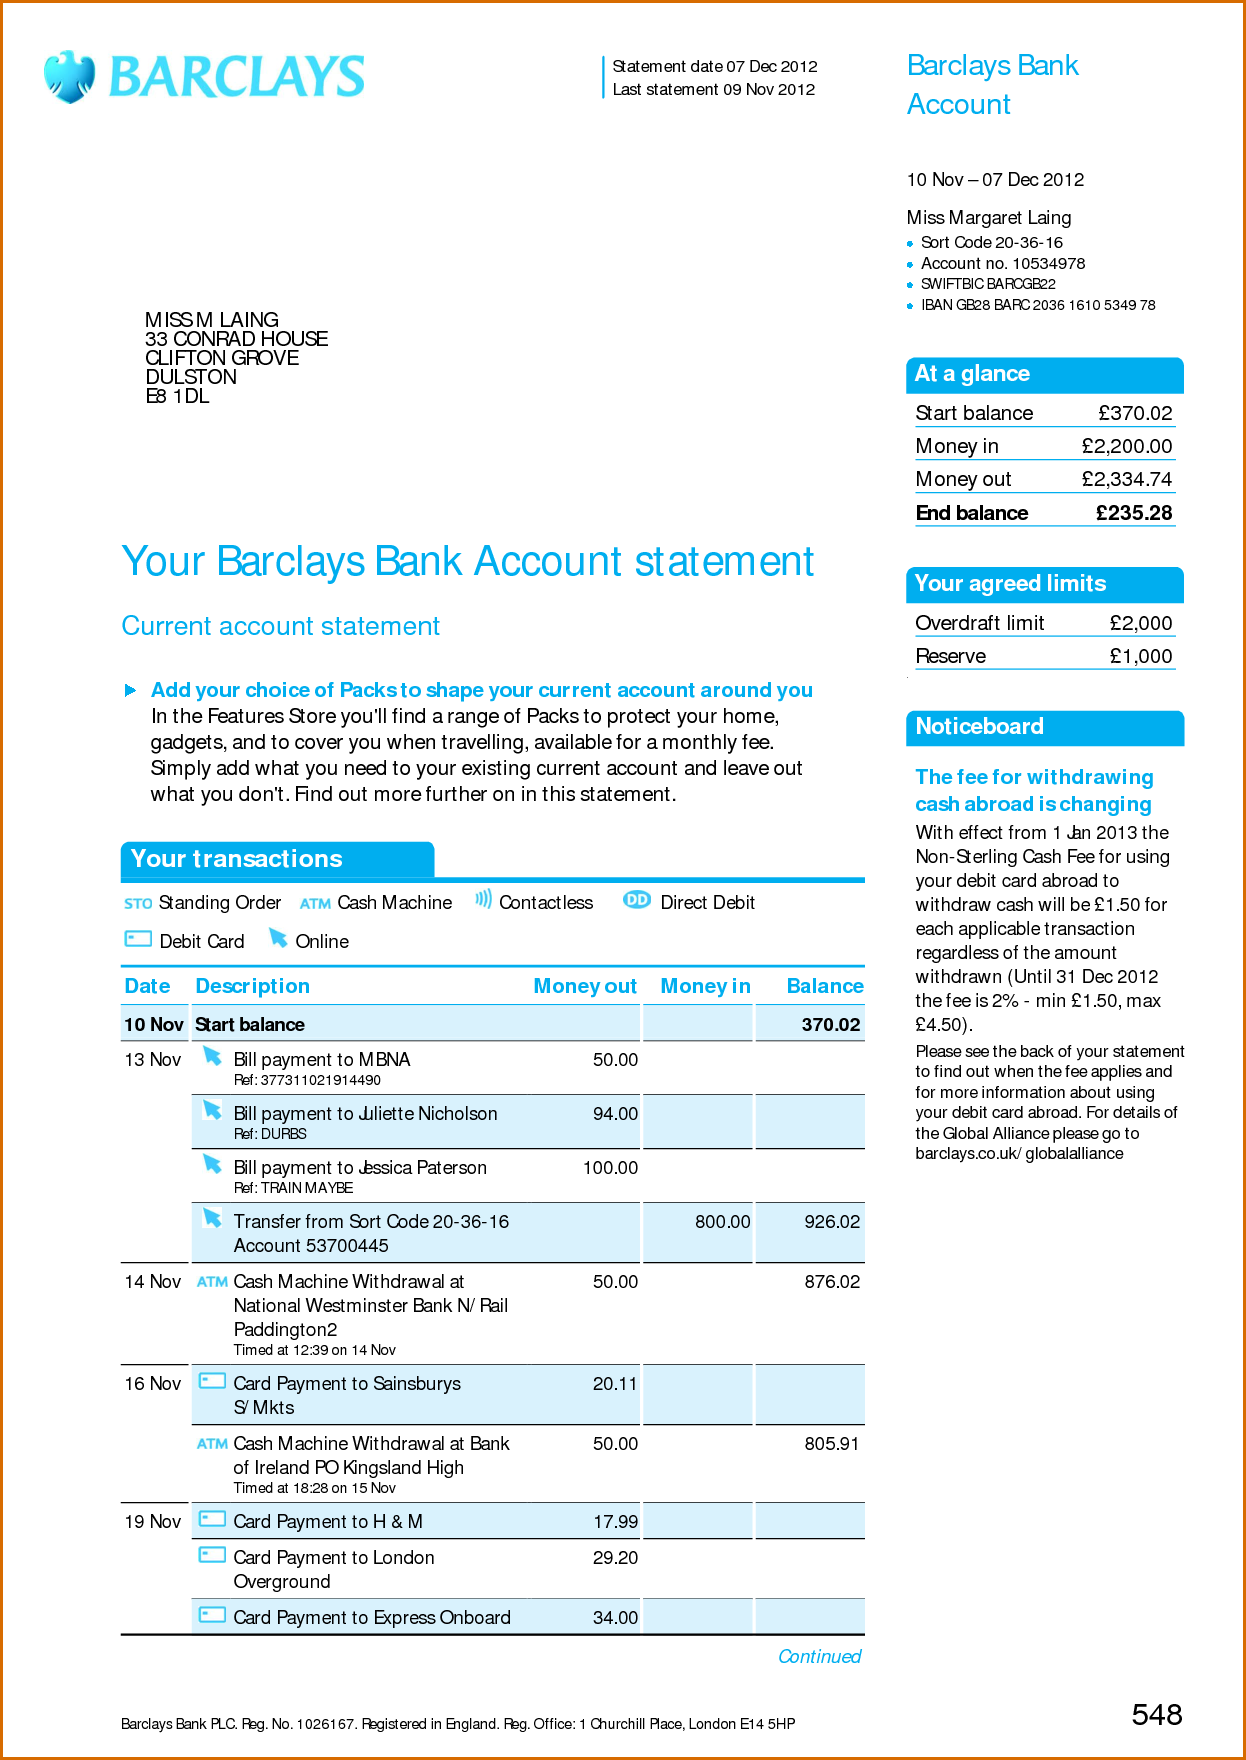 Bank Statement Wells Fargo  Bank Statement And Banks